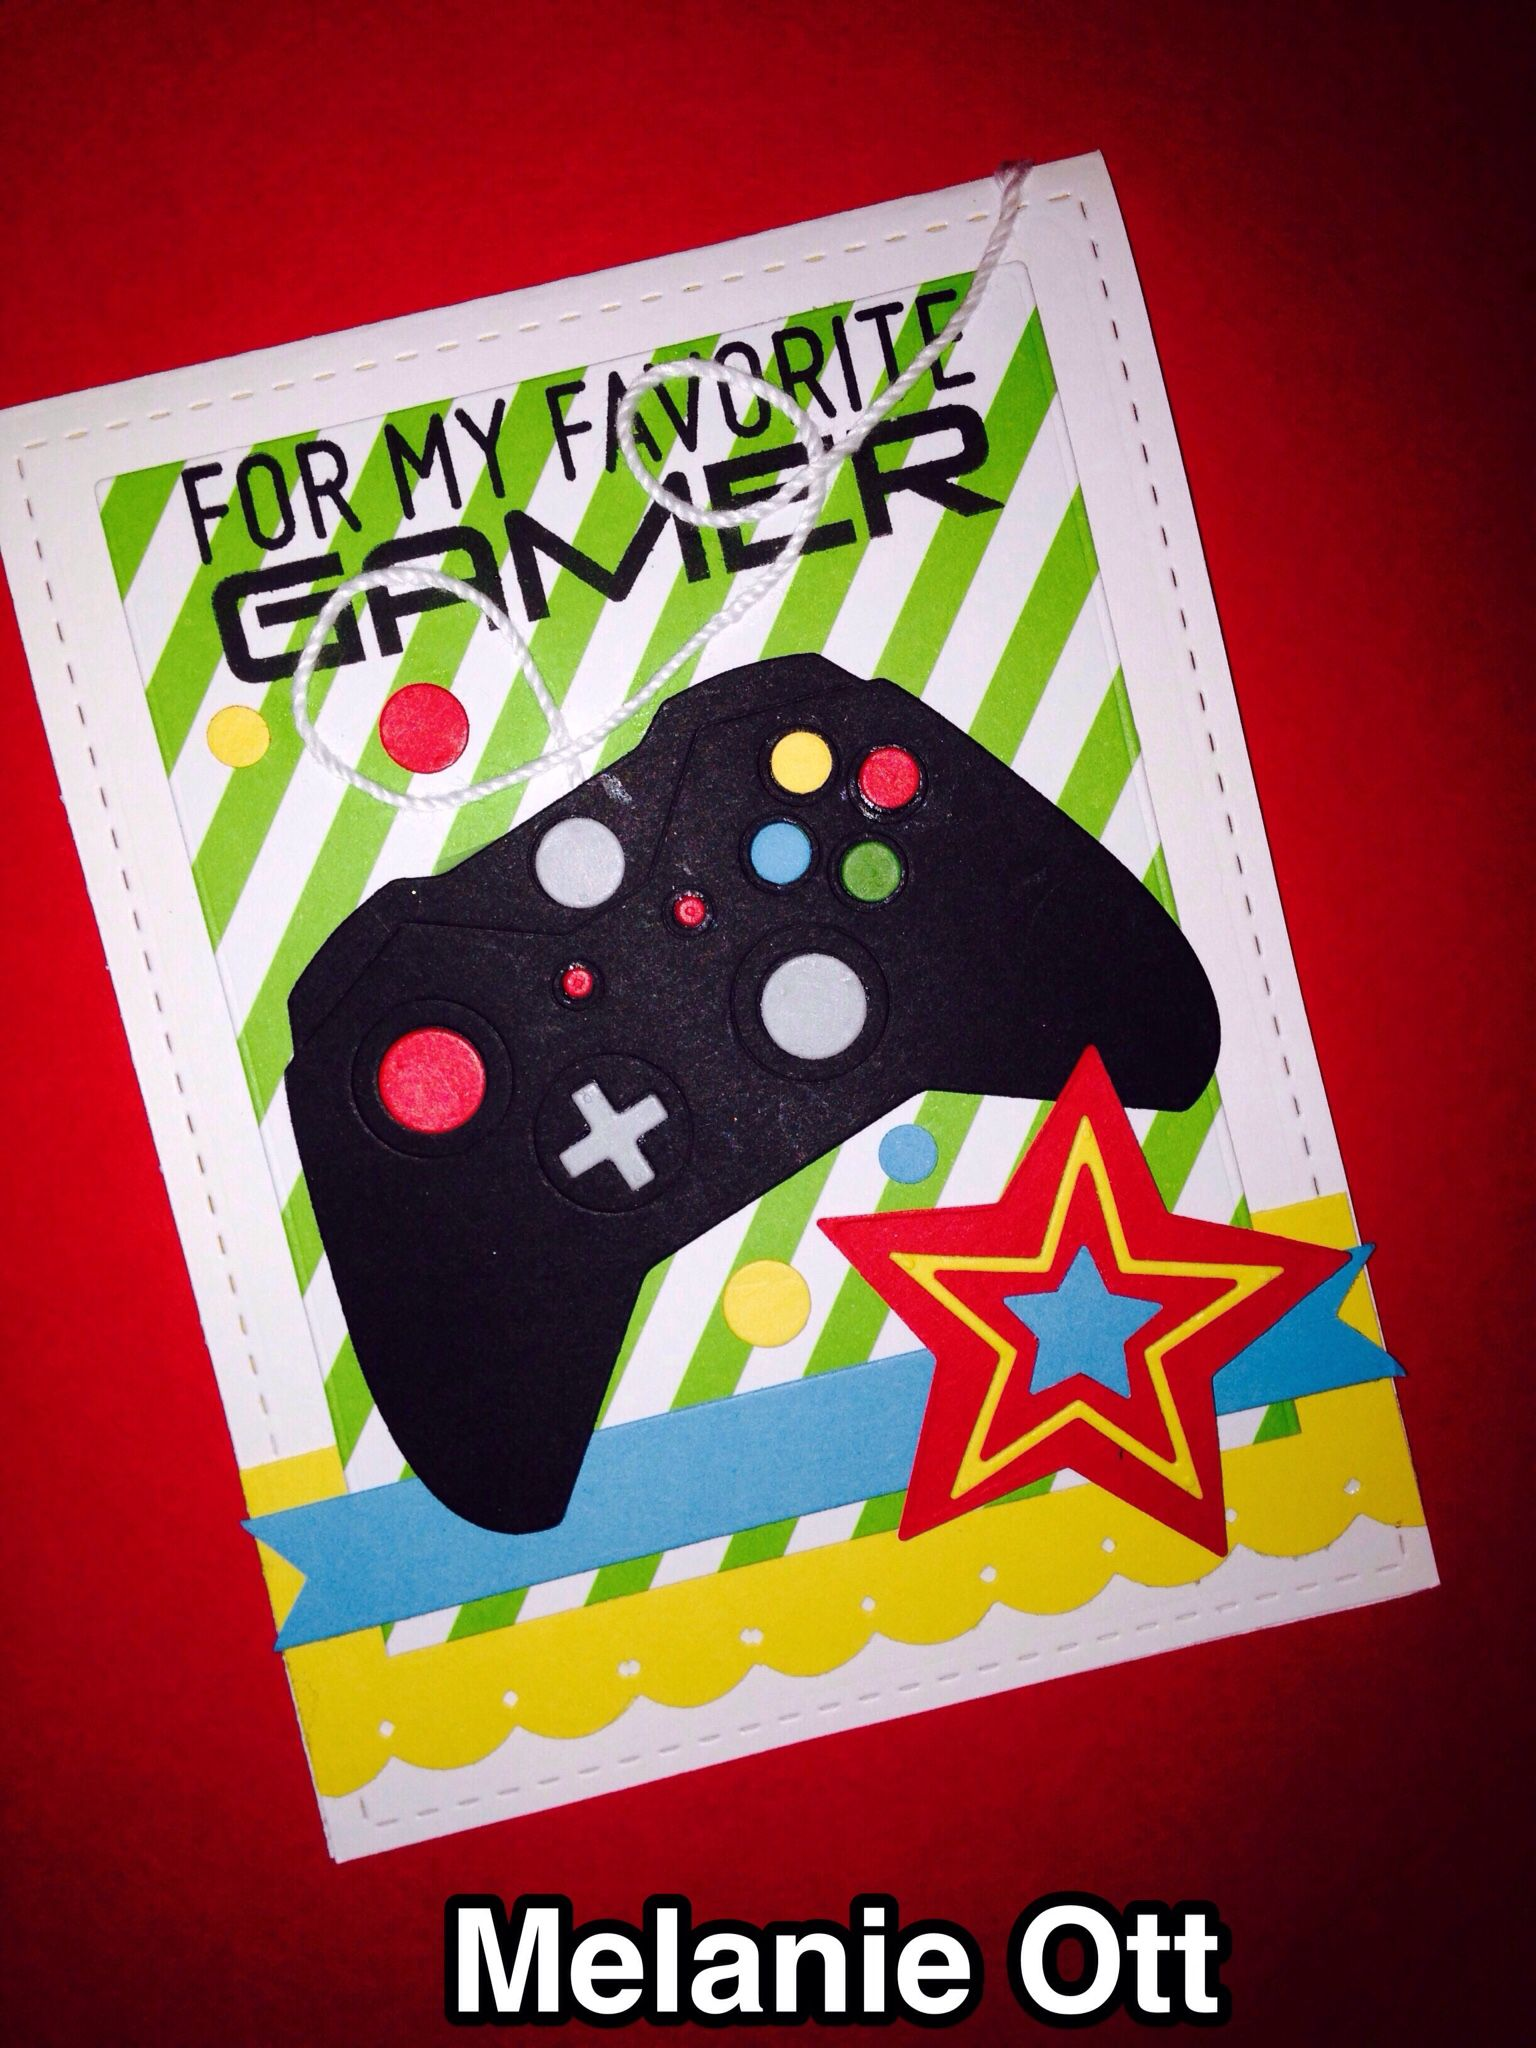 Mft My Favorite Gamer Birthday Card Using Game Controller Die And Level Up Stamp Set Handmade Birthday Cards Cards Handmade Birthday Cards For Boys